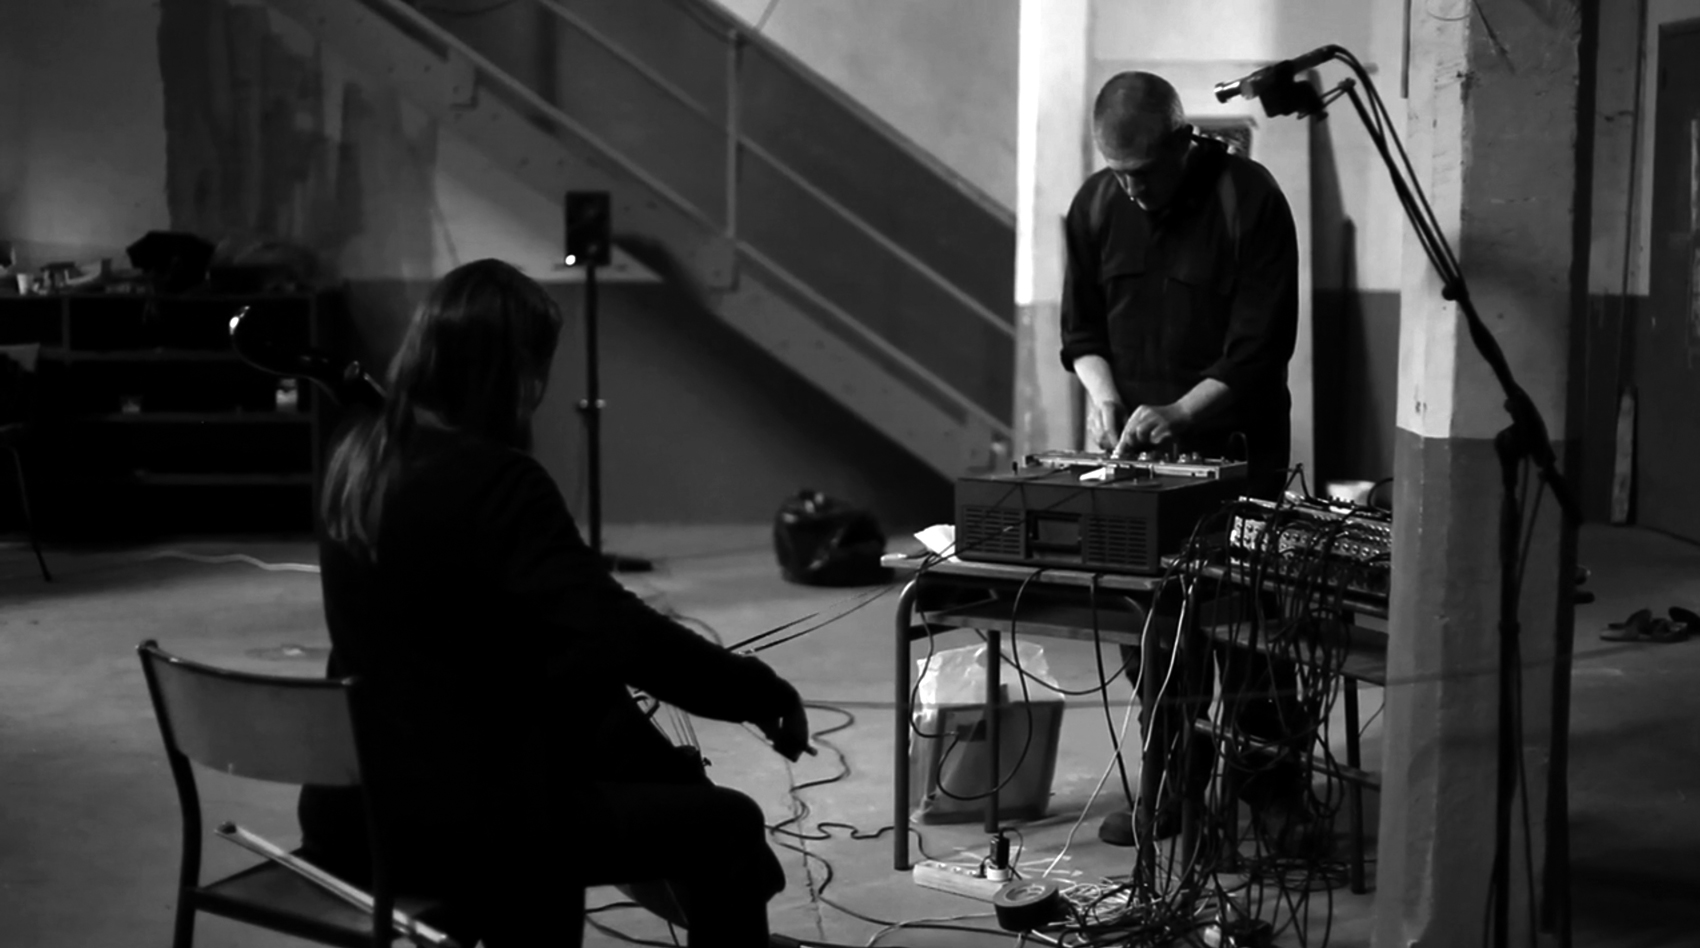 JEROME NOETINGER & AUDE ROMARY + TONY CONRAD: COMPLETELY IN THE PRESENT